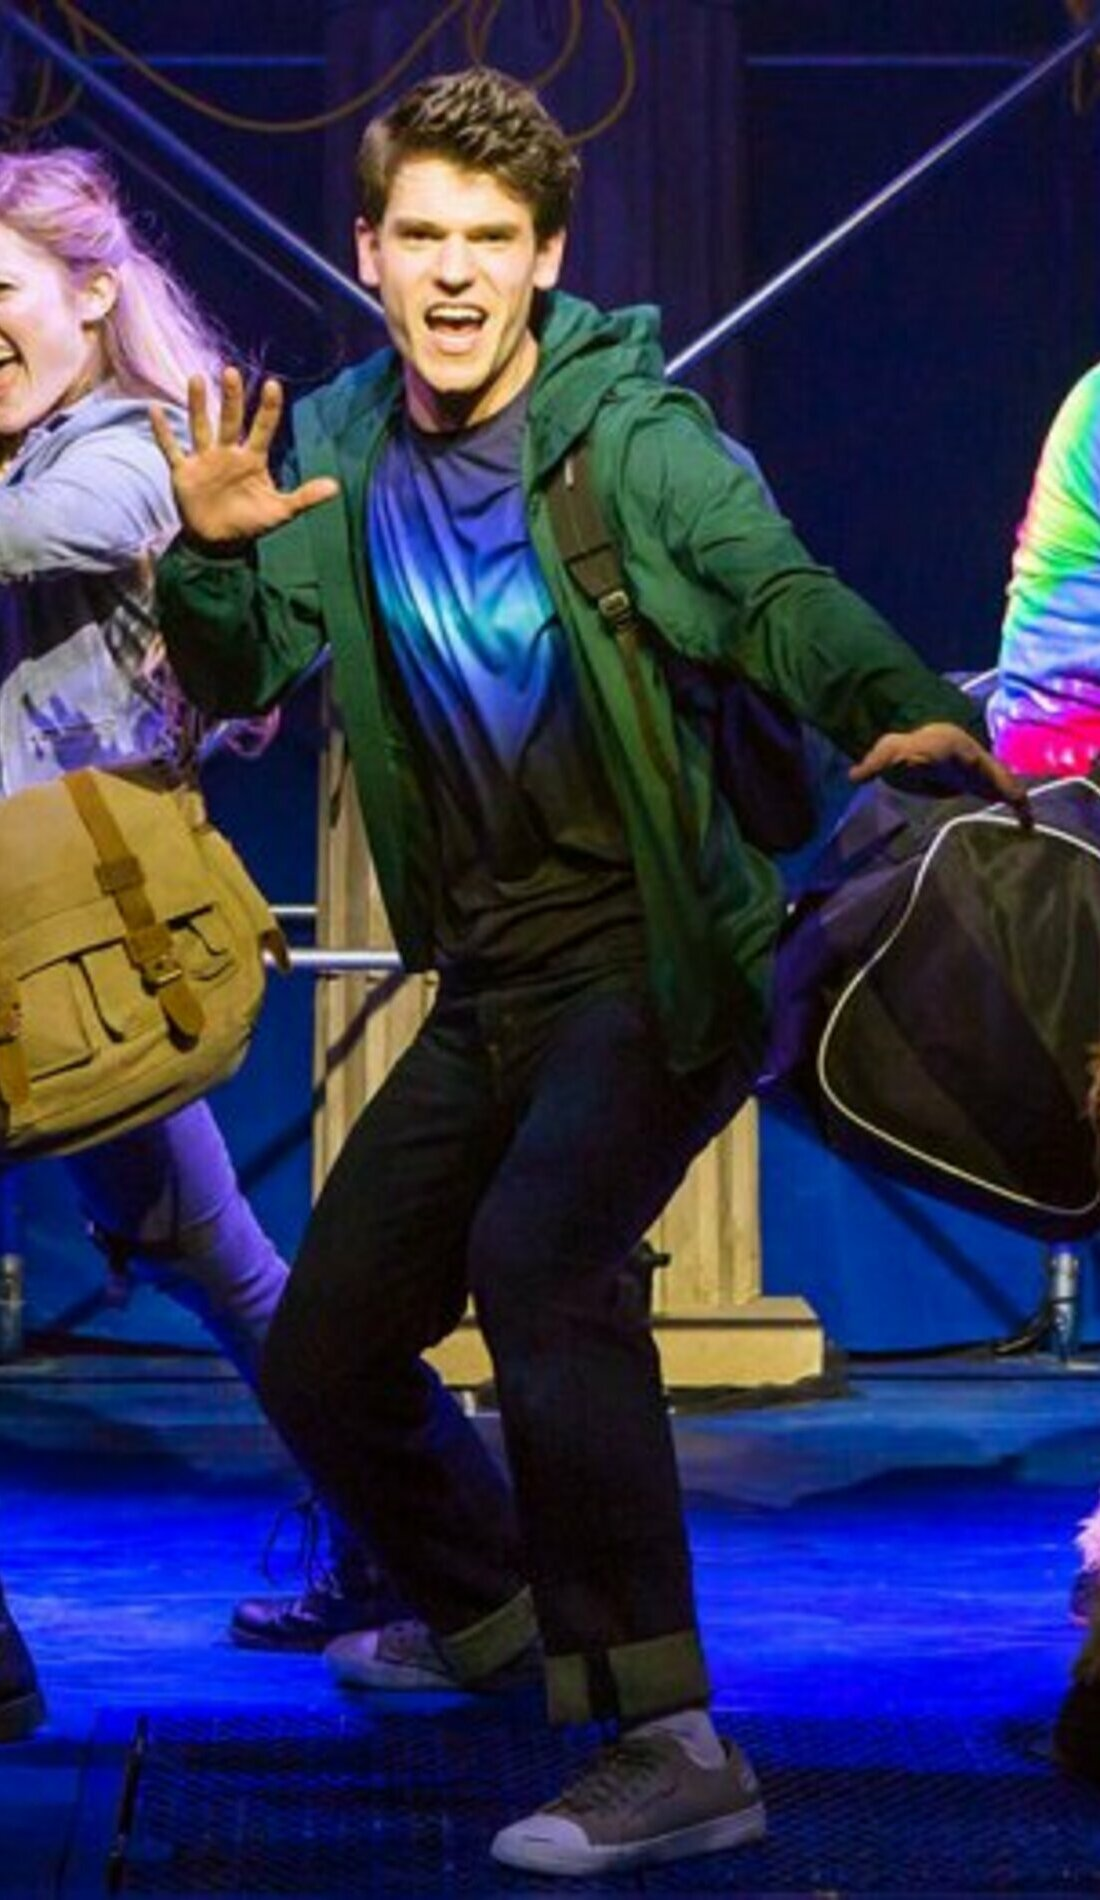 A The Lightning Thief: The Percy Jackson Musical live event